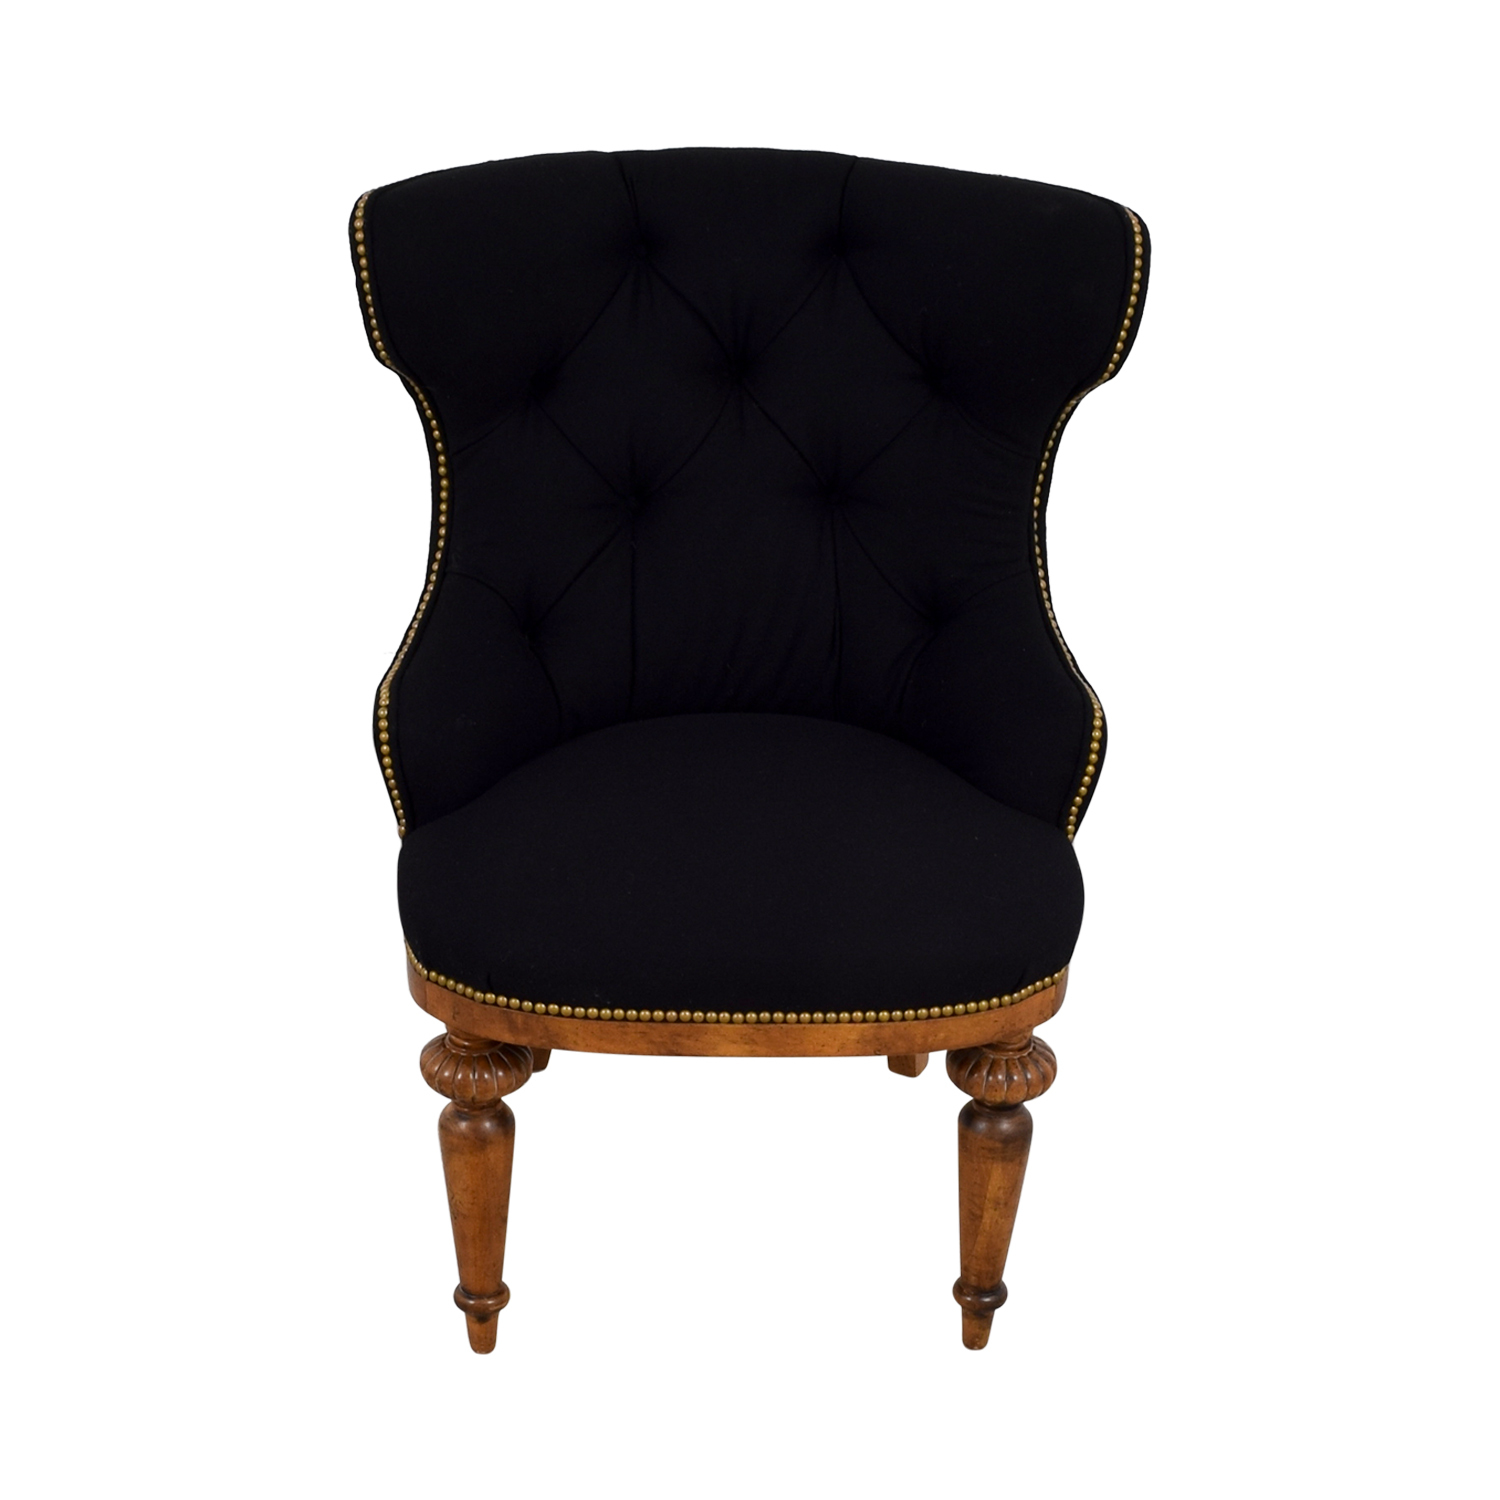 34% OFF Furniture Masters Furniture Masters Black Tufted